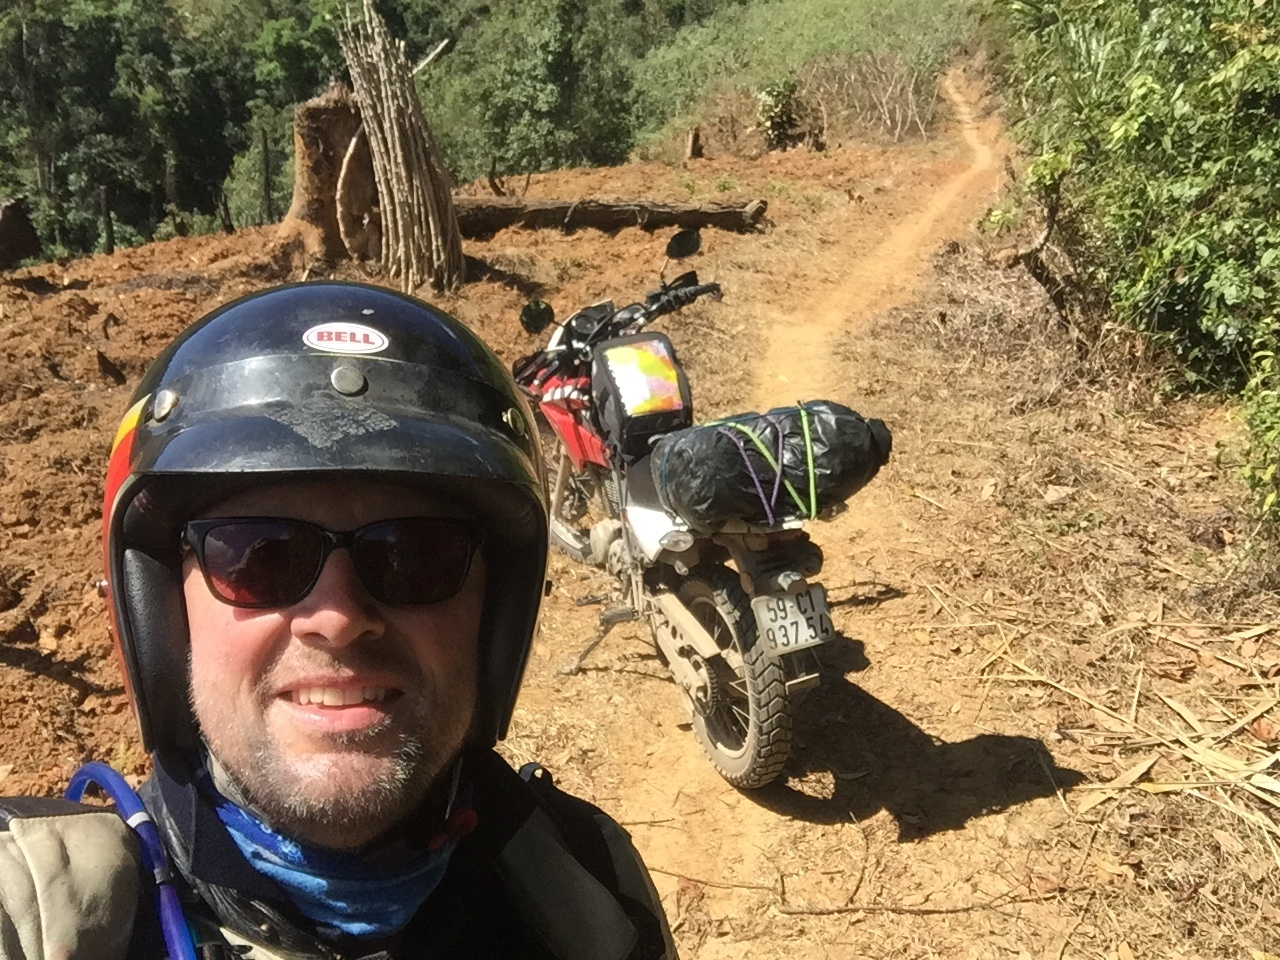 Once again my old buddy Mark and I went off seeking adventure riding dirt bikes from Hanoi to Saigon along the Ho Chi Minh Trail.